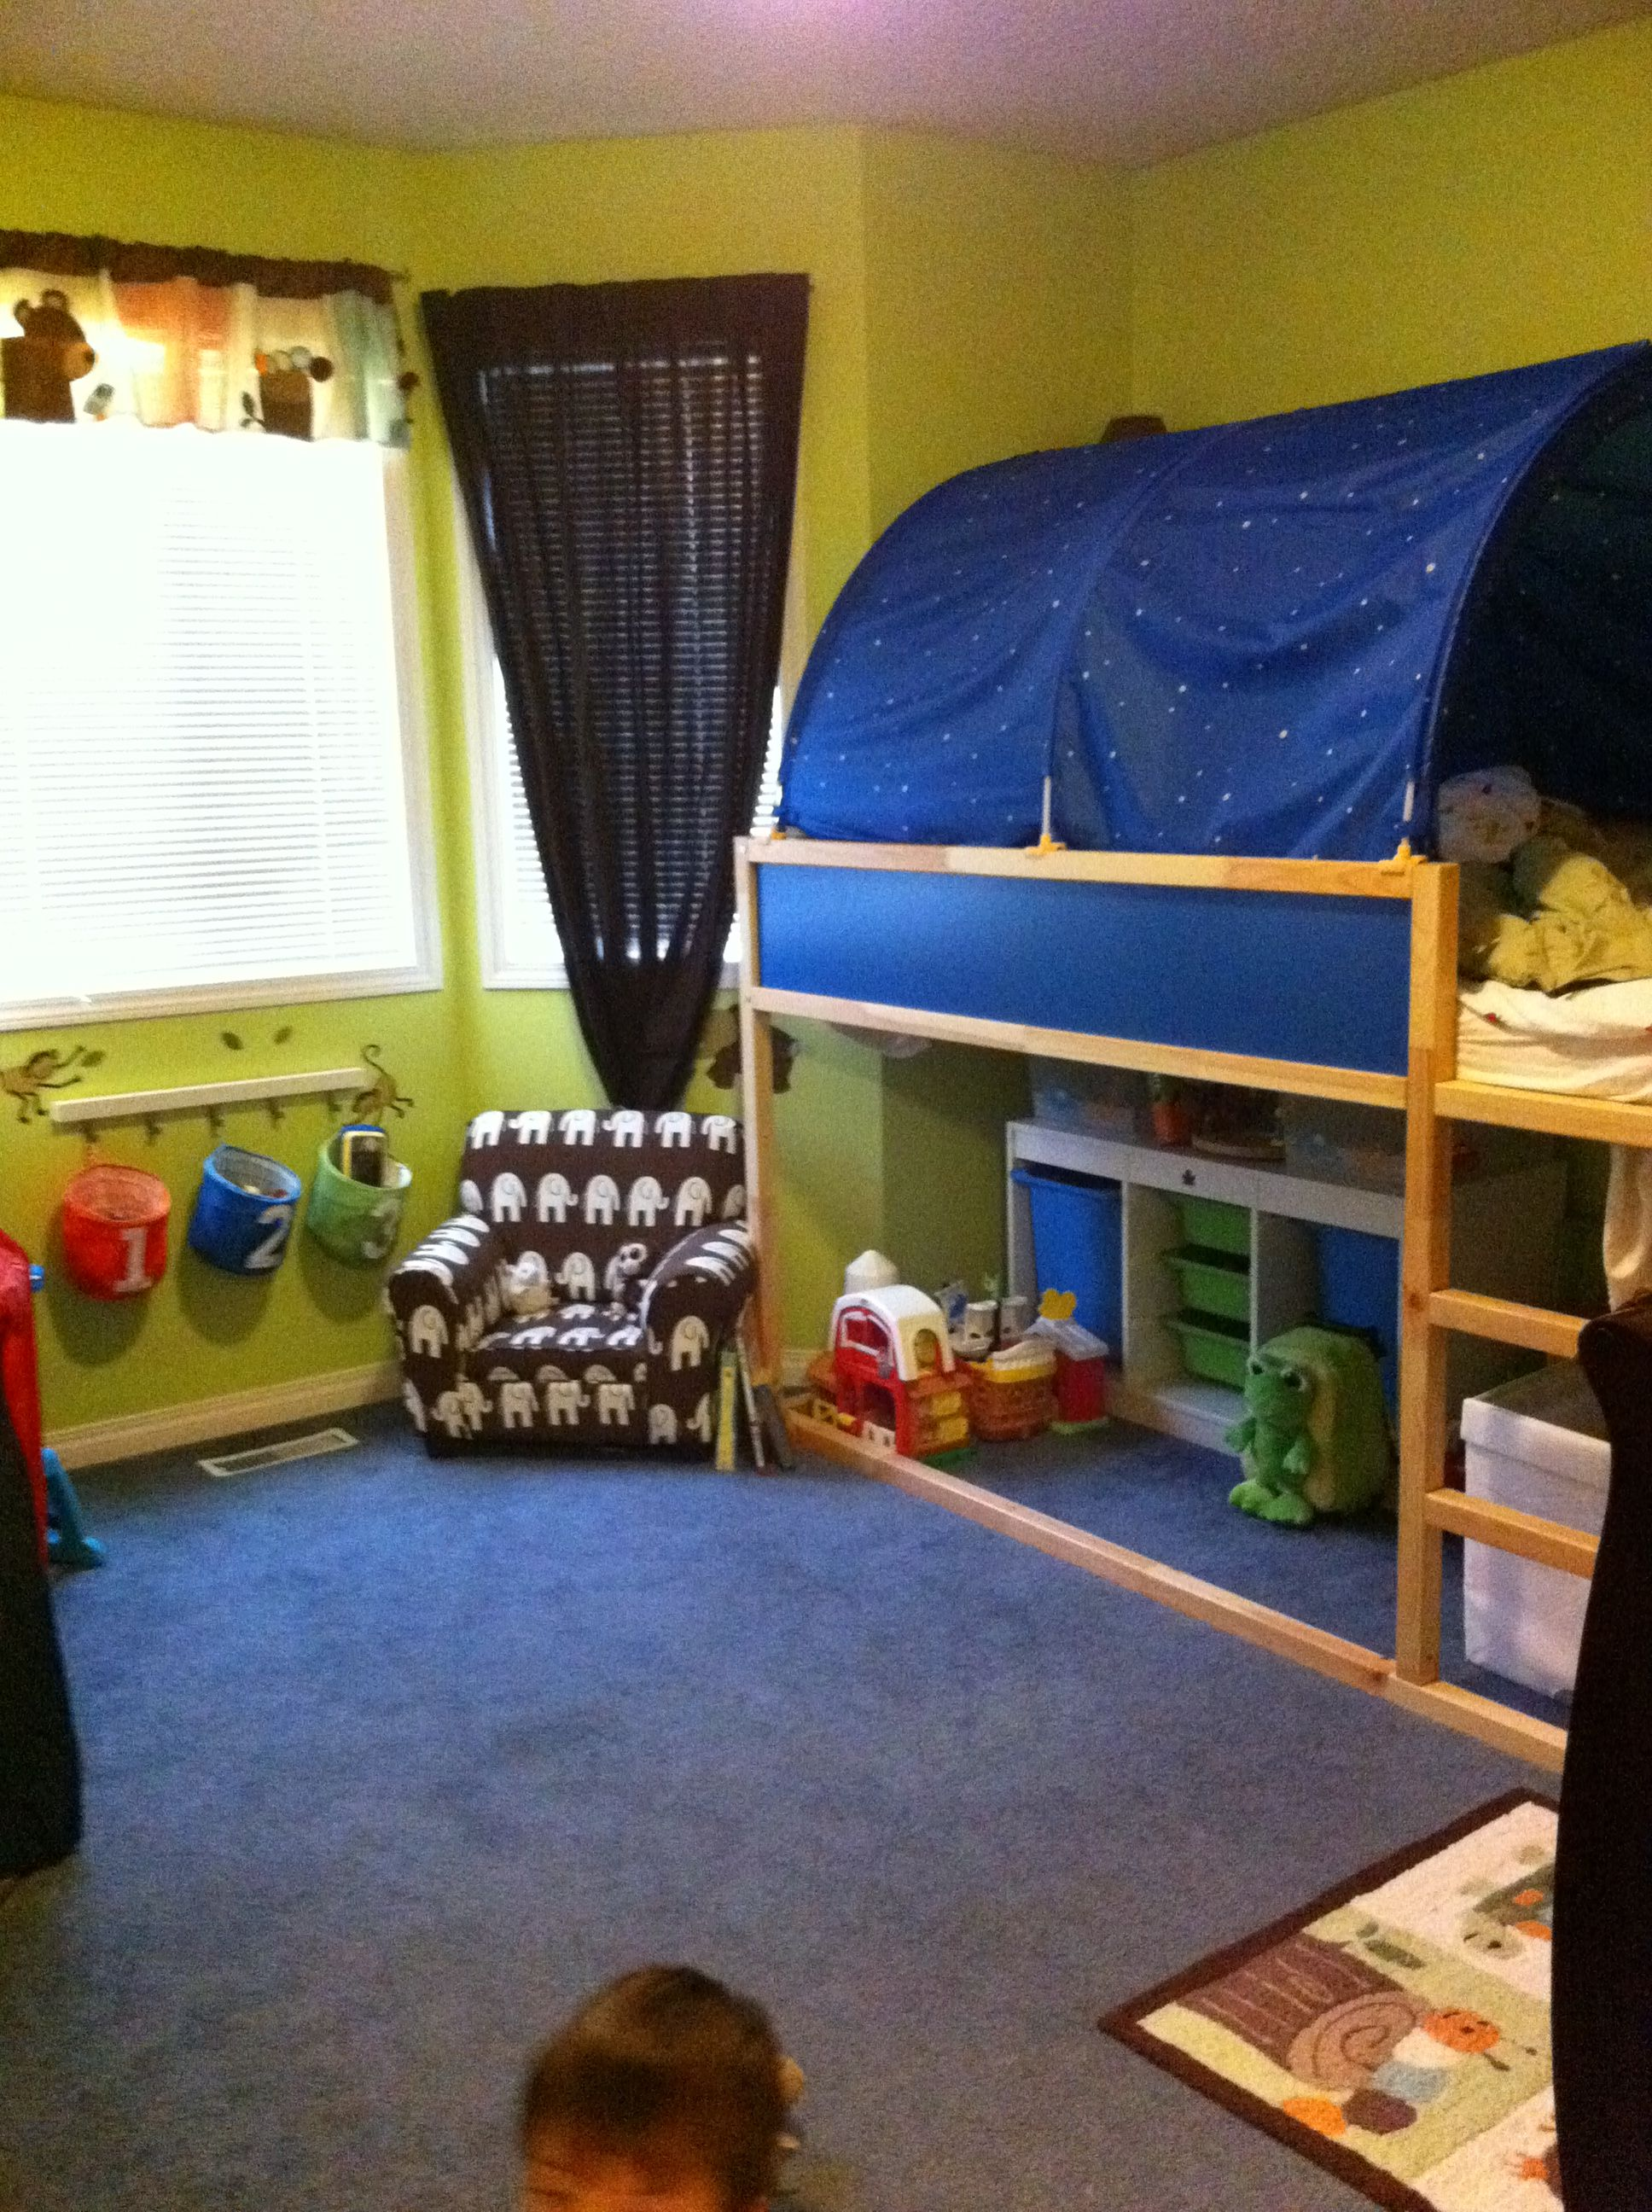 View of Trey's bed in the nursery he shares with his sister Presley.